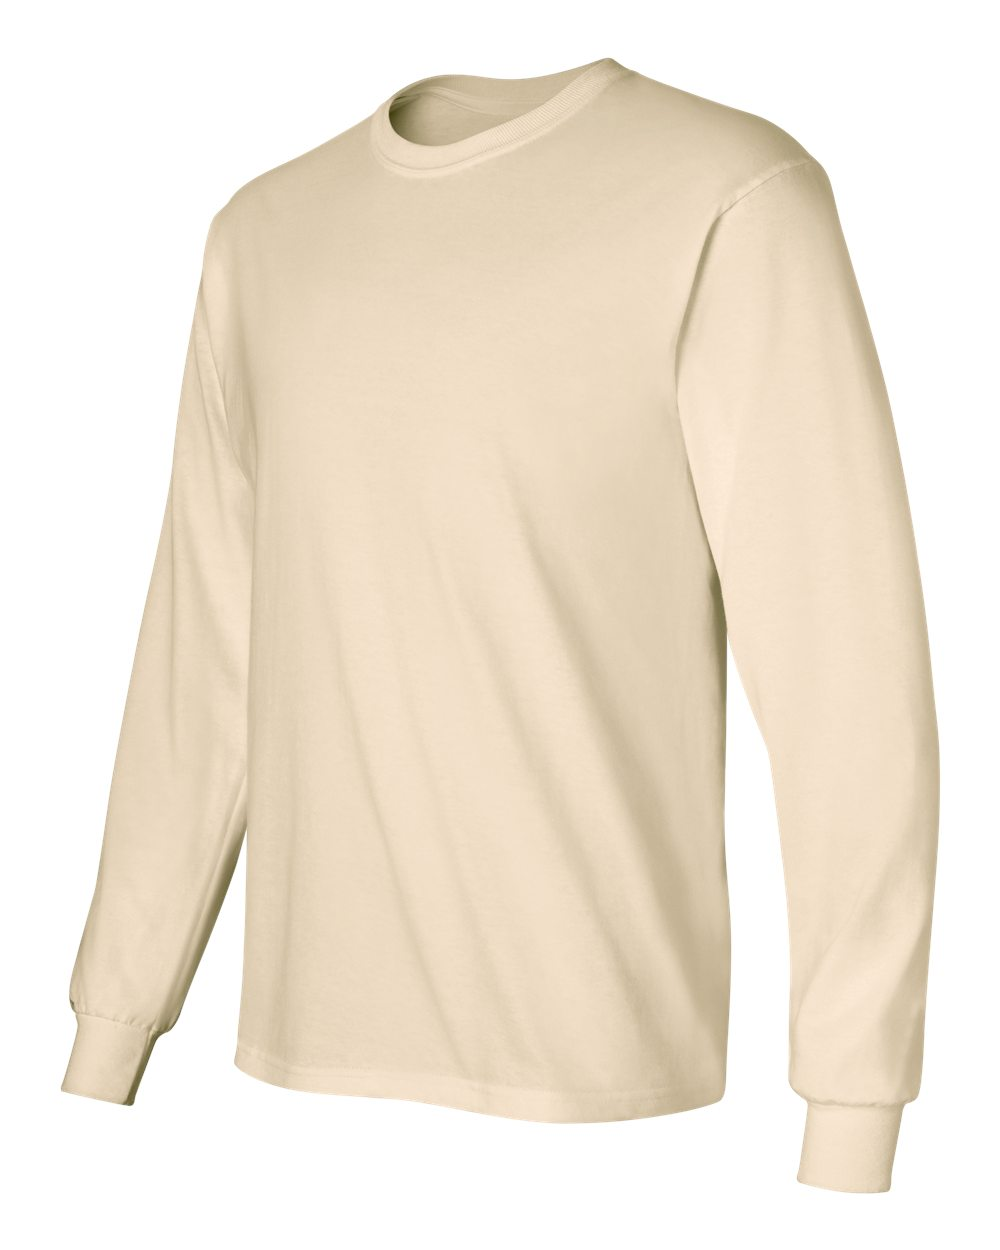 Gildan-Men-039-s-Ultra-Cotton-6-oz-Long-Sleeve-T-Shirt-G240-S-5XL thumbnail 63